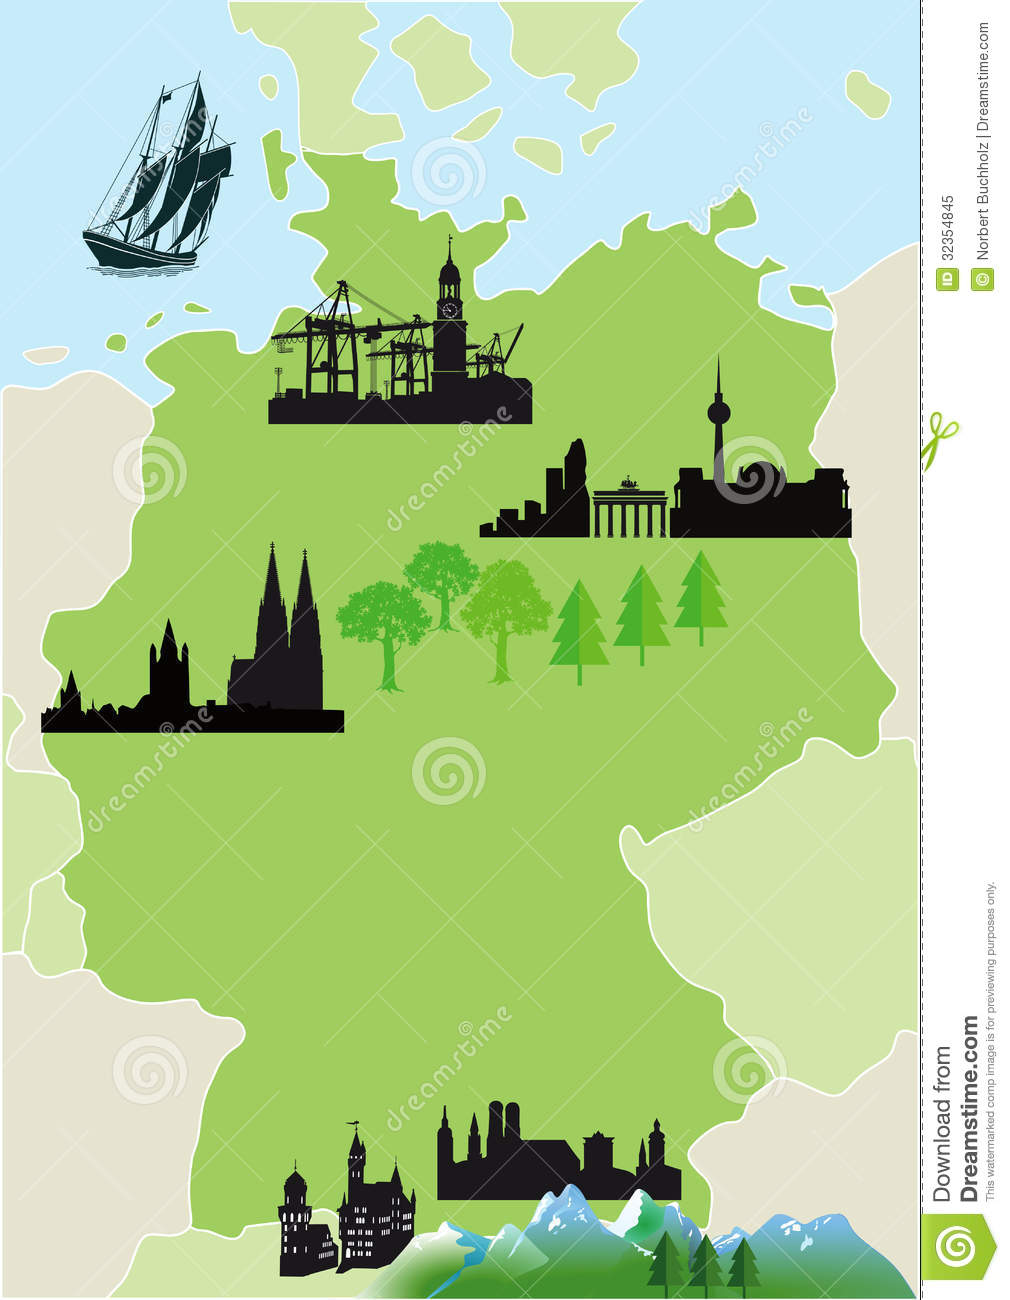 Map Of Germany Mountains.Map Of Germany Stock Vector Illustration Of Graphic 32354845